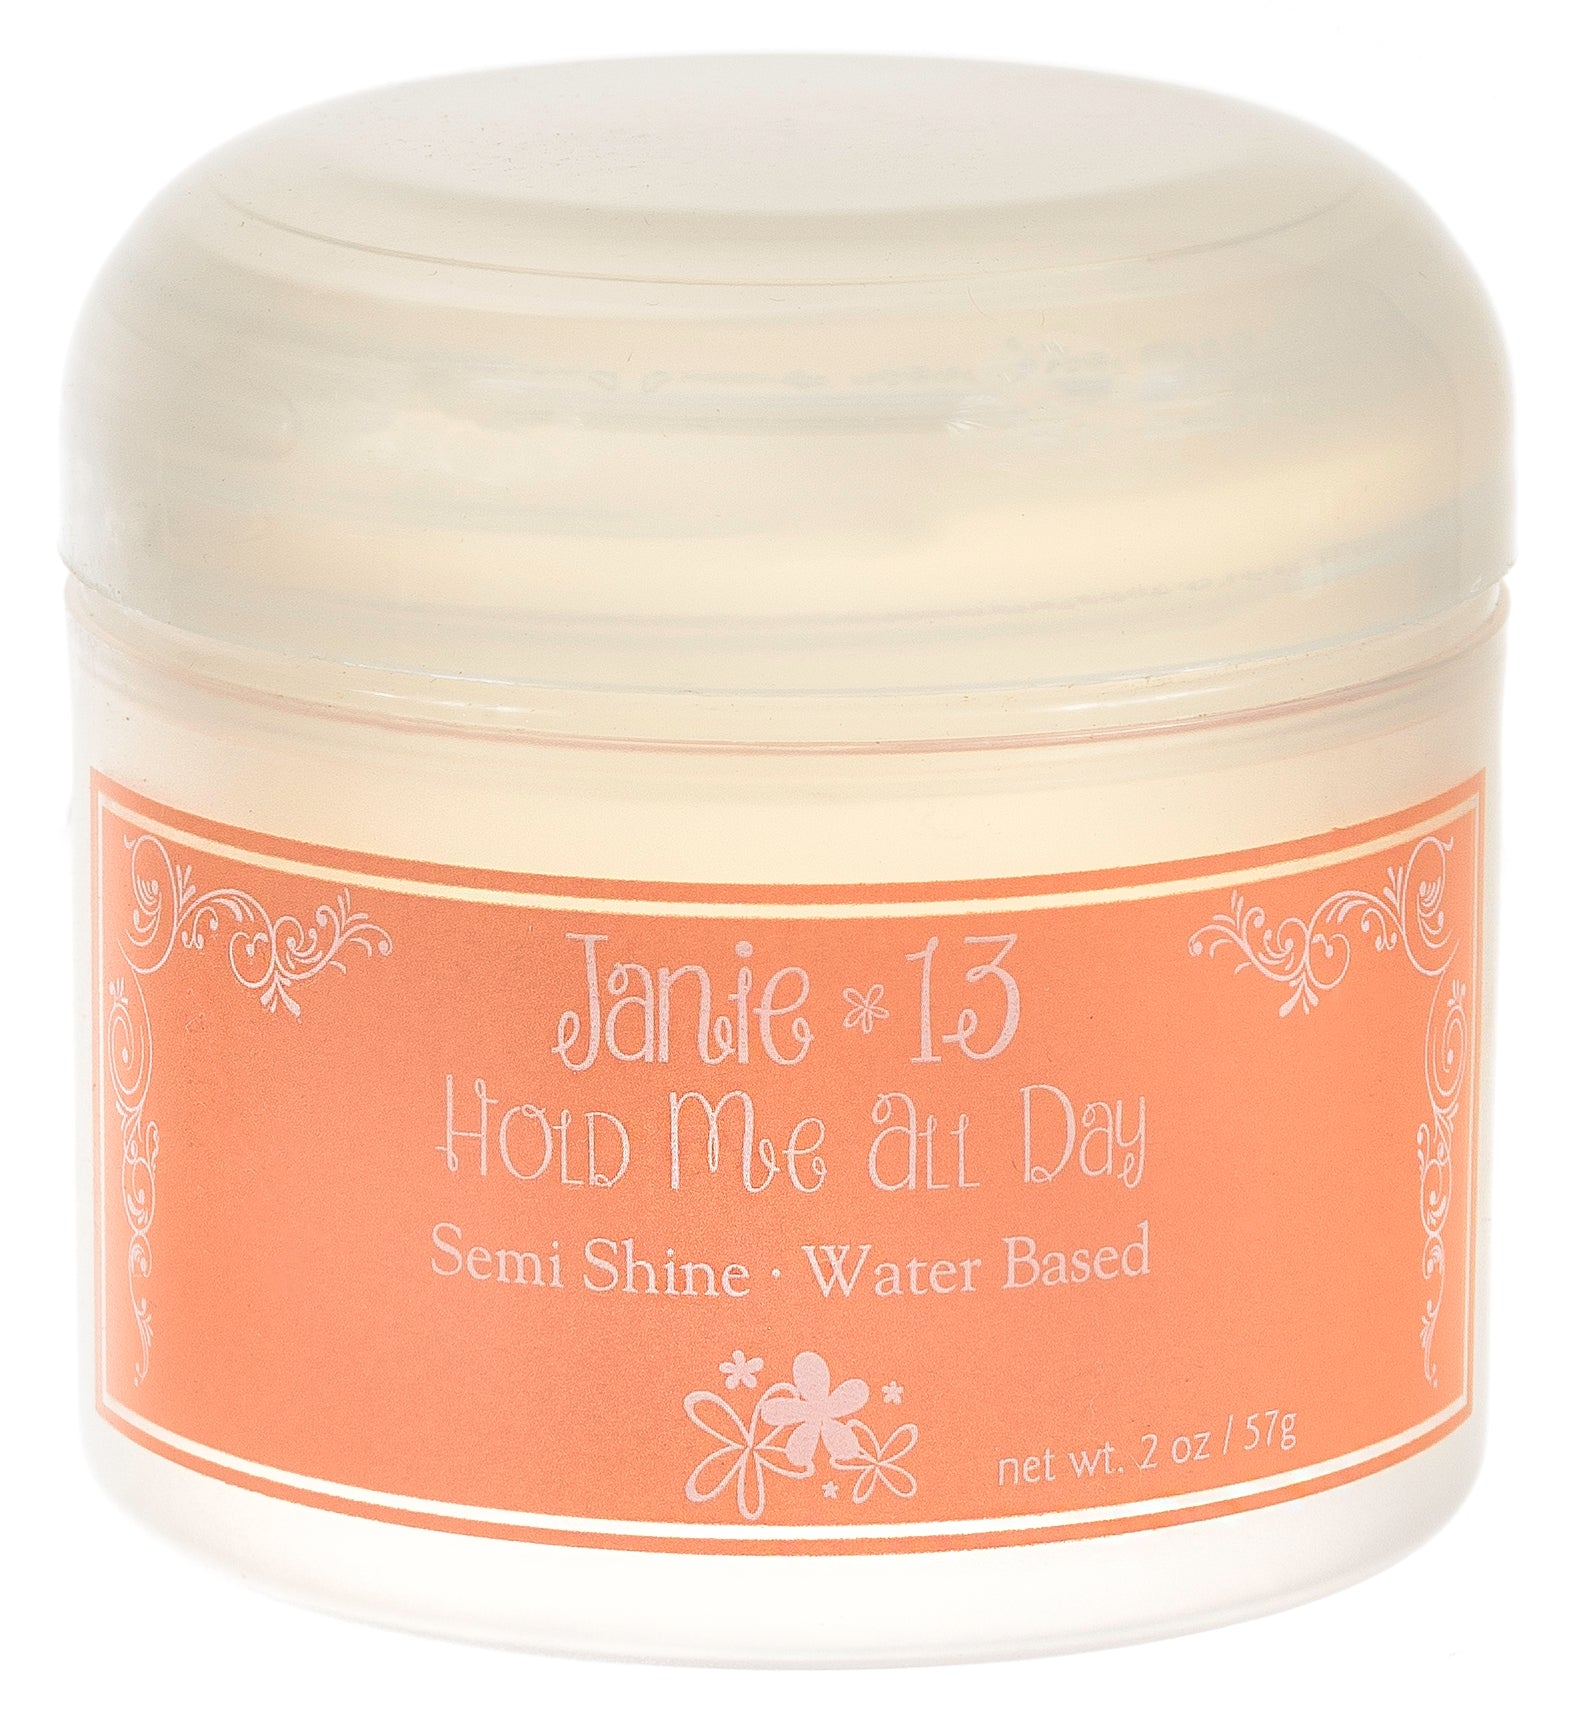 Hold Me All Day Pomade  2.0 oz - Janie 13 Hair Products best hair products for sulphate free shampoo and gluten free products